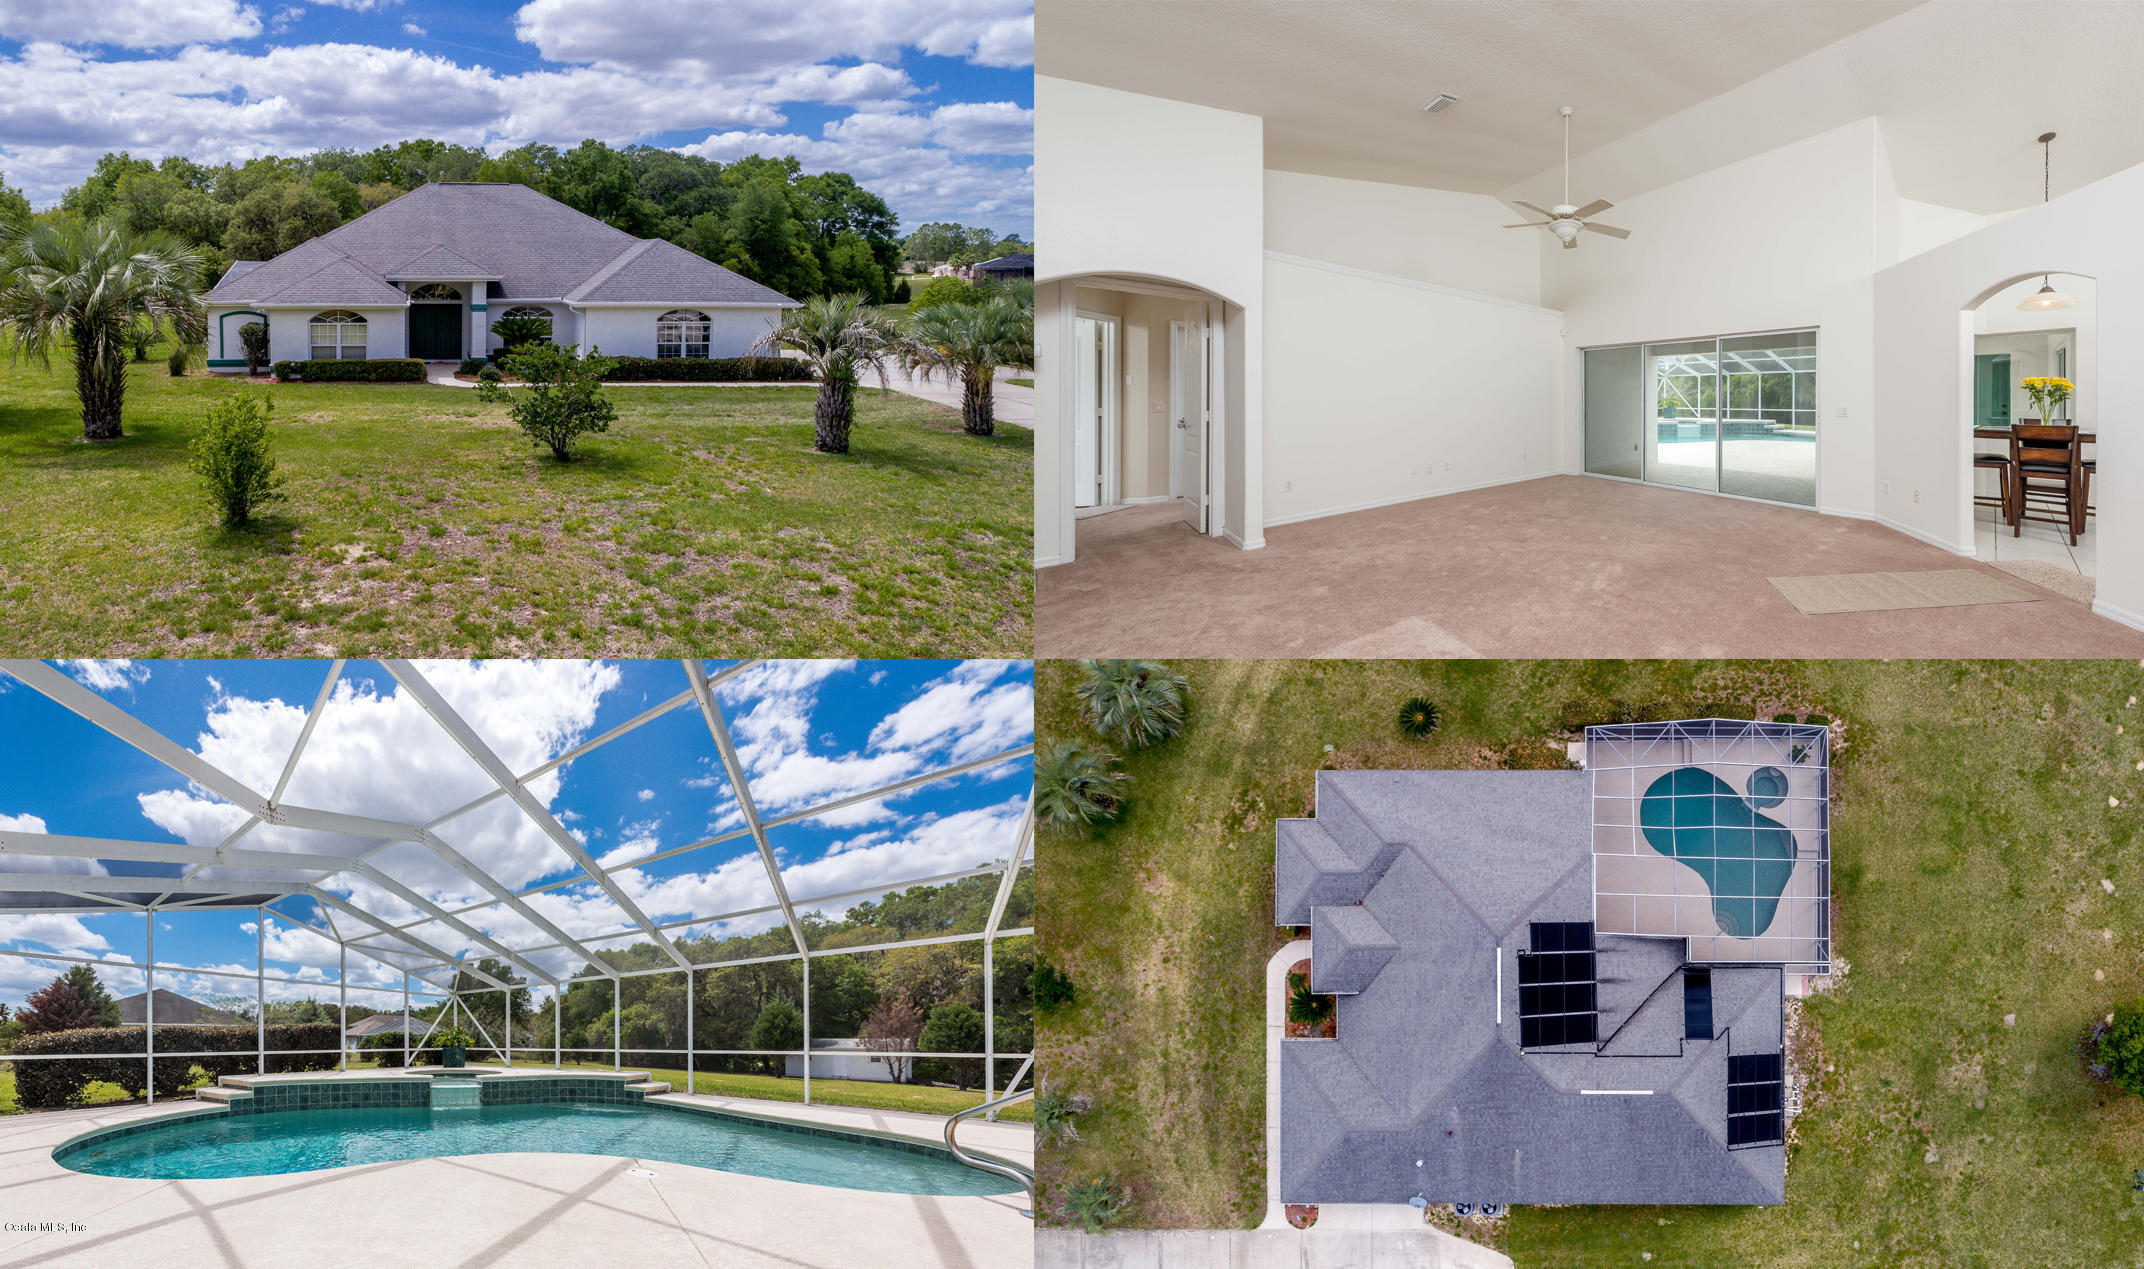 6856 NE 61ST AVENUE ROAD, SILVER SPRINGS, FL 34488